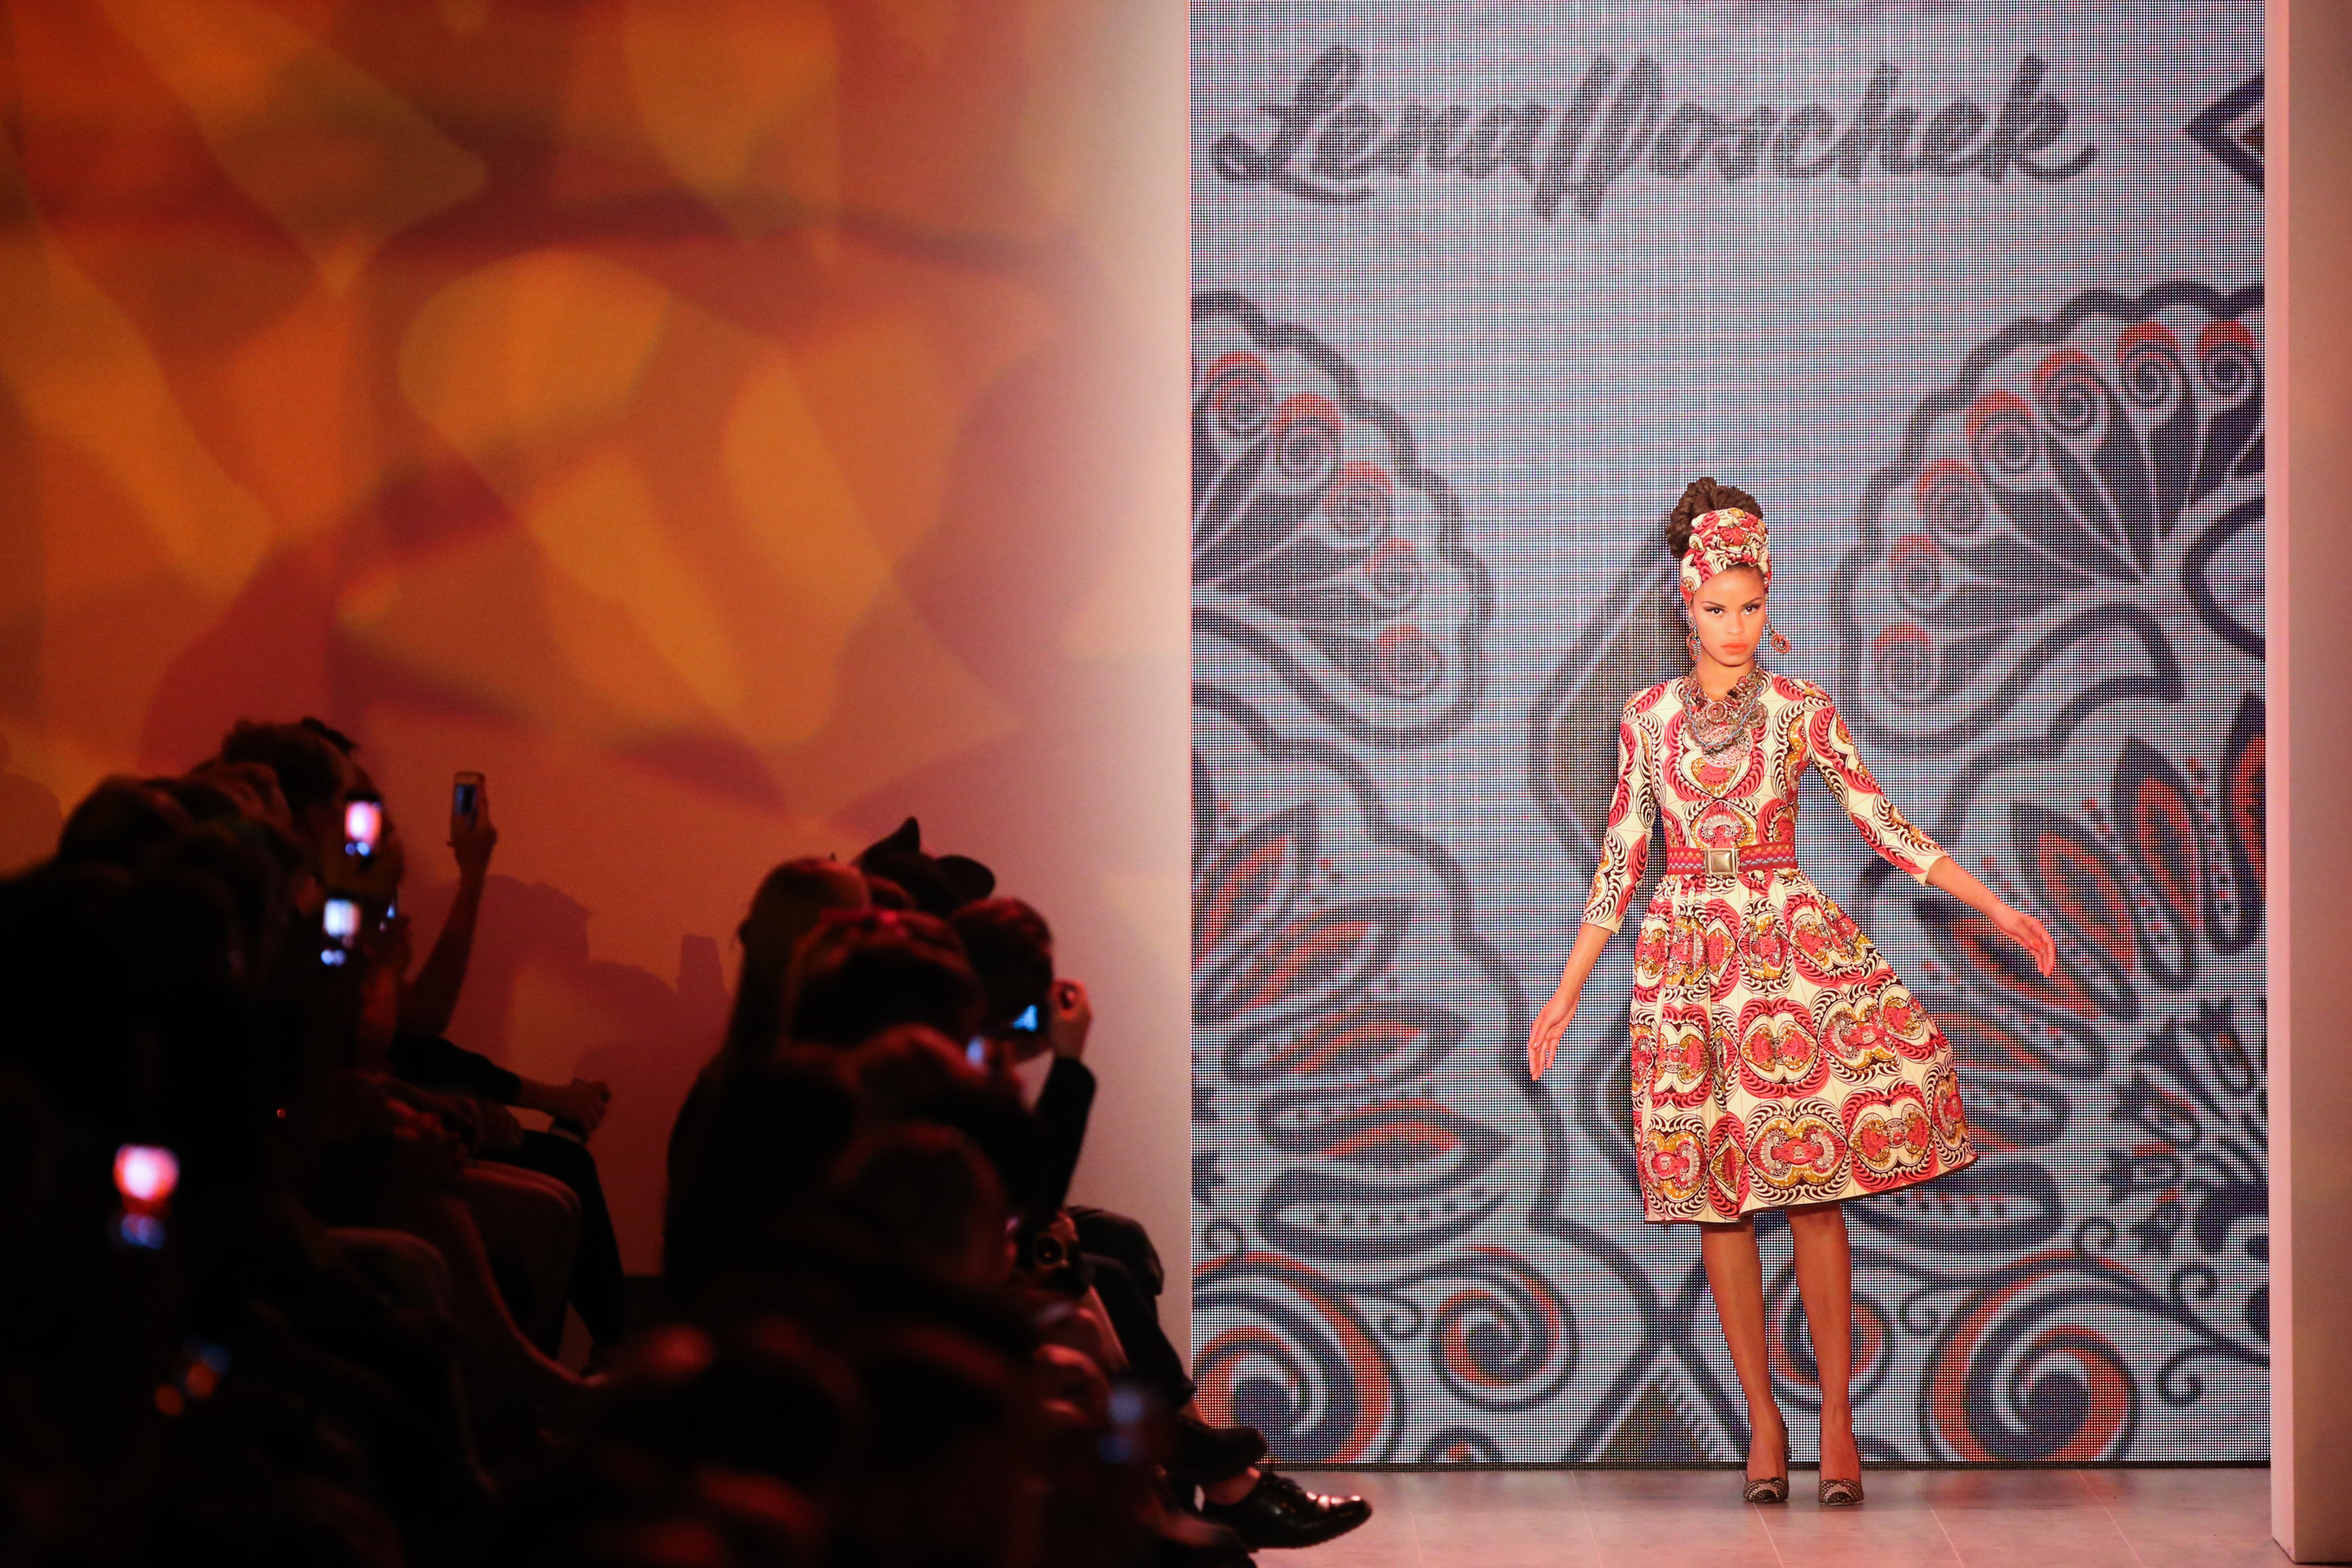 BERLIN, July 8, 2014 A model displays a creation by Austrian designer Lena Hoschek during the Mercedes-Benz Fashion Week Berl